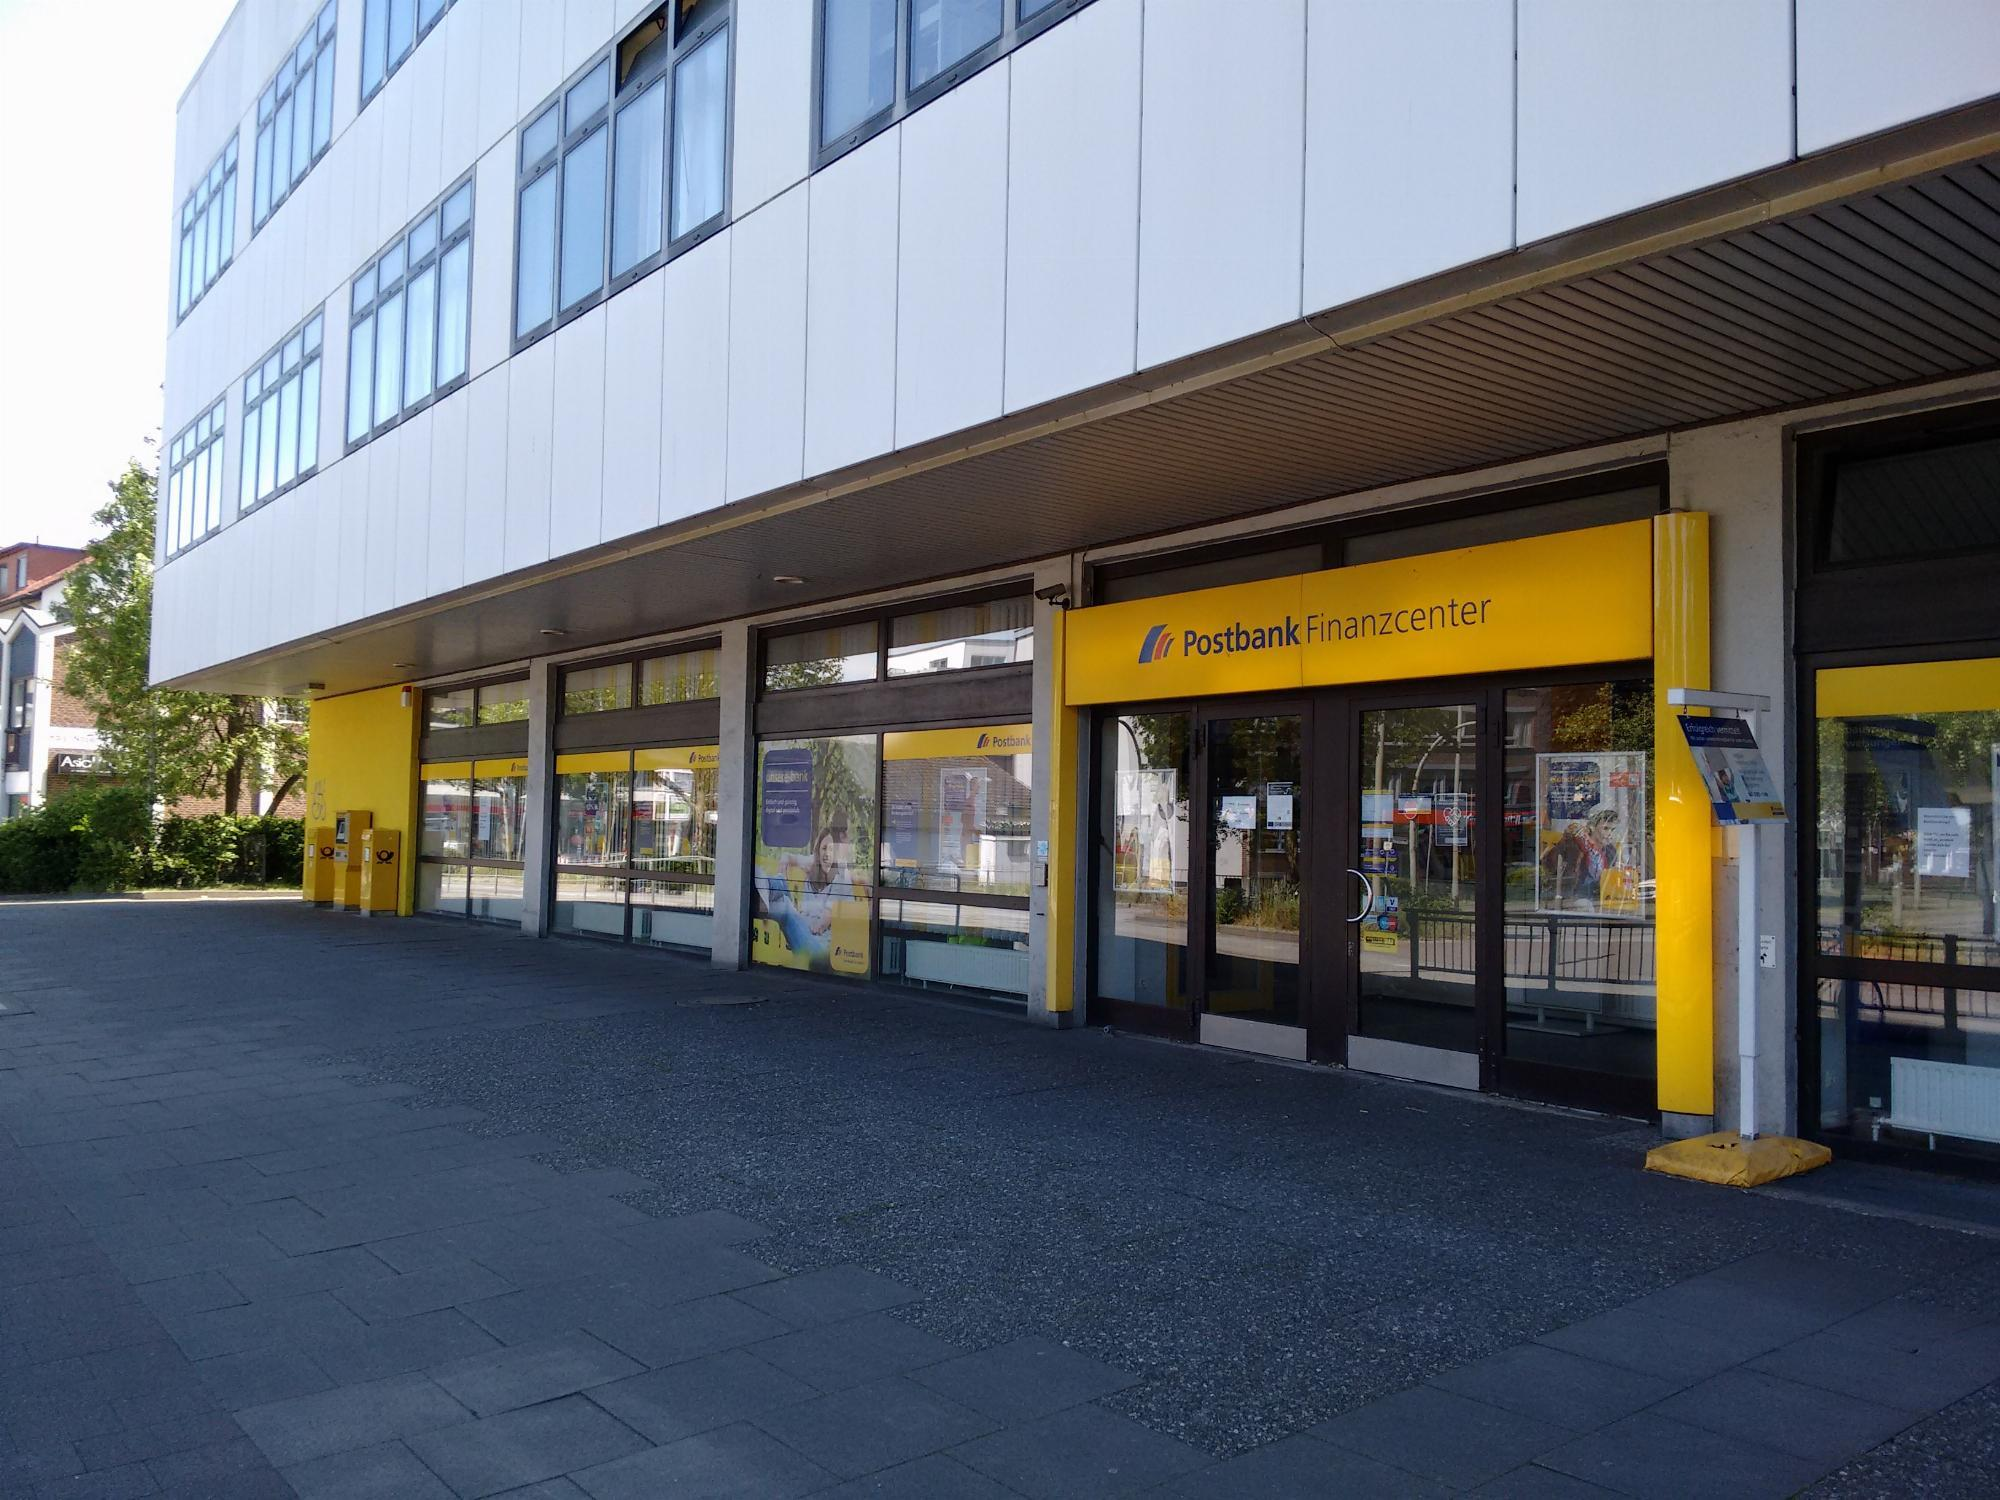 Deutsche Post / Hamburg 73 / Postbank Filiale 507